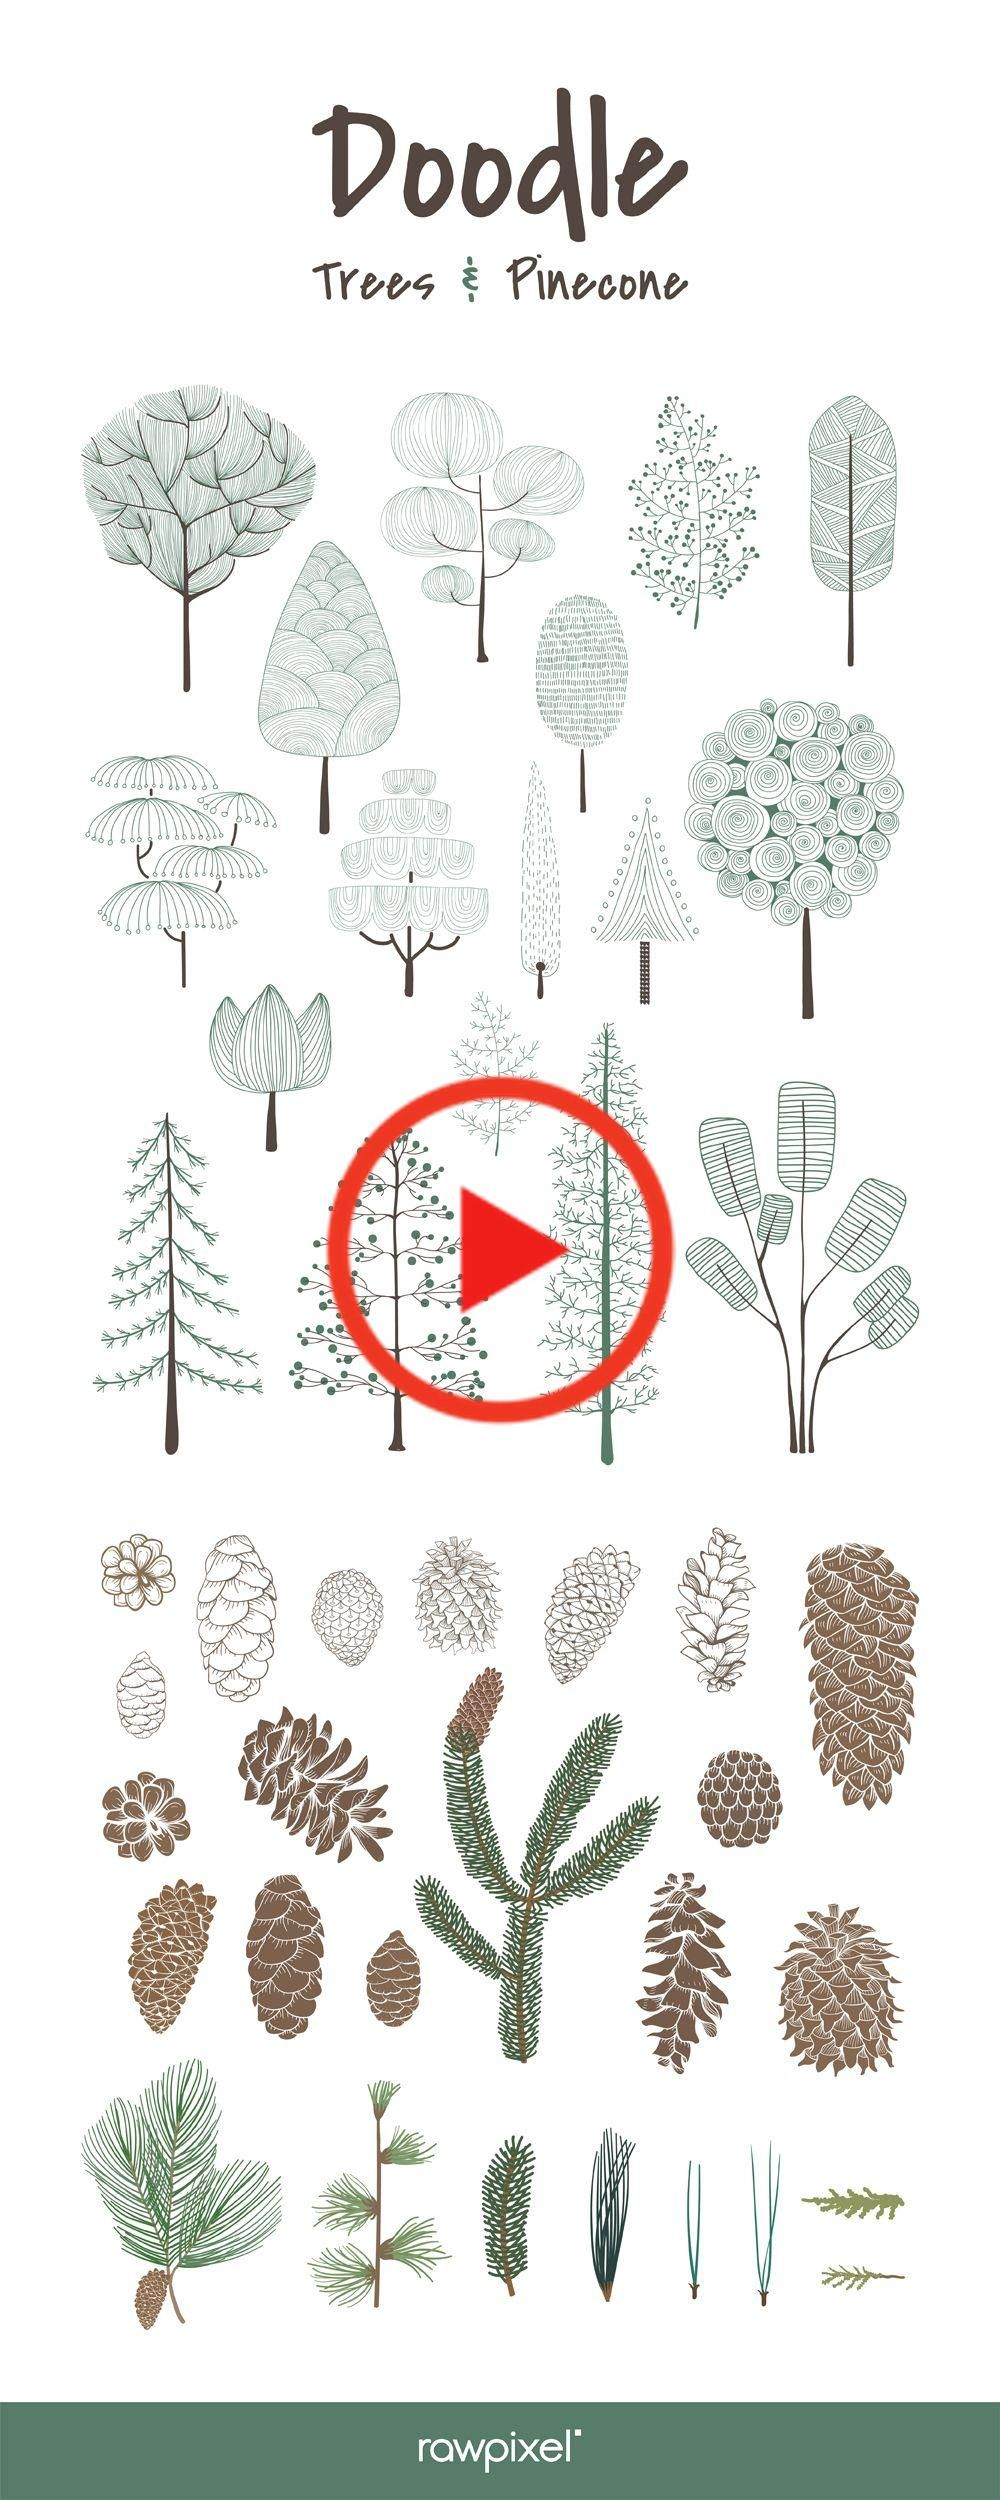 Get Free And Premium Royalty Free Vectors Of Doodle Trees And Pine Cones At Rawpixel Com Tree Doodle Tree Roots Tattoo Pine Tree Tattoo Tree Doodle Tree Drawing Tree Roots Tattoo